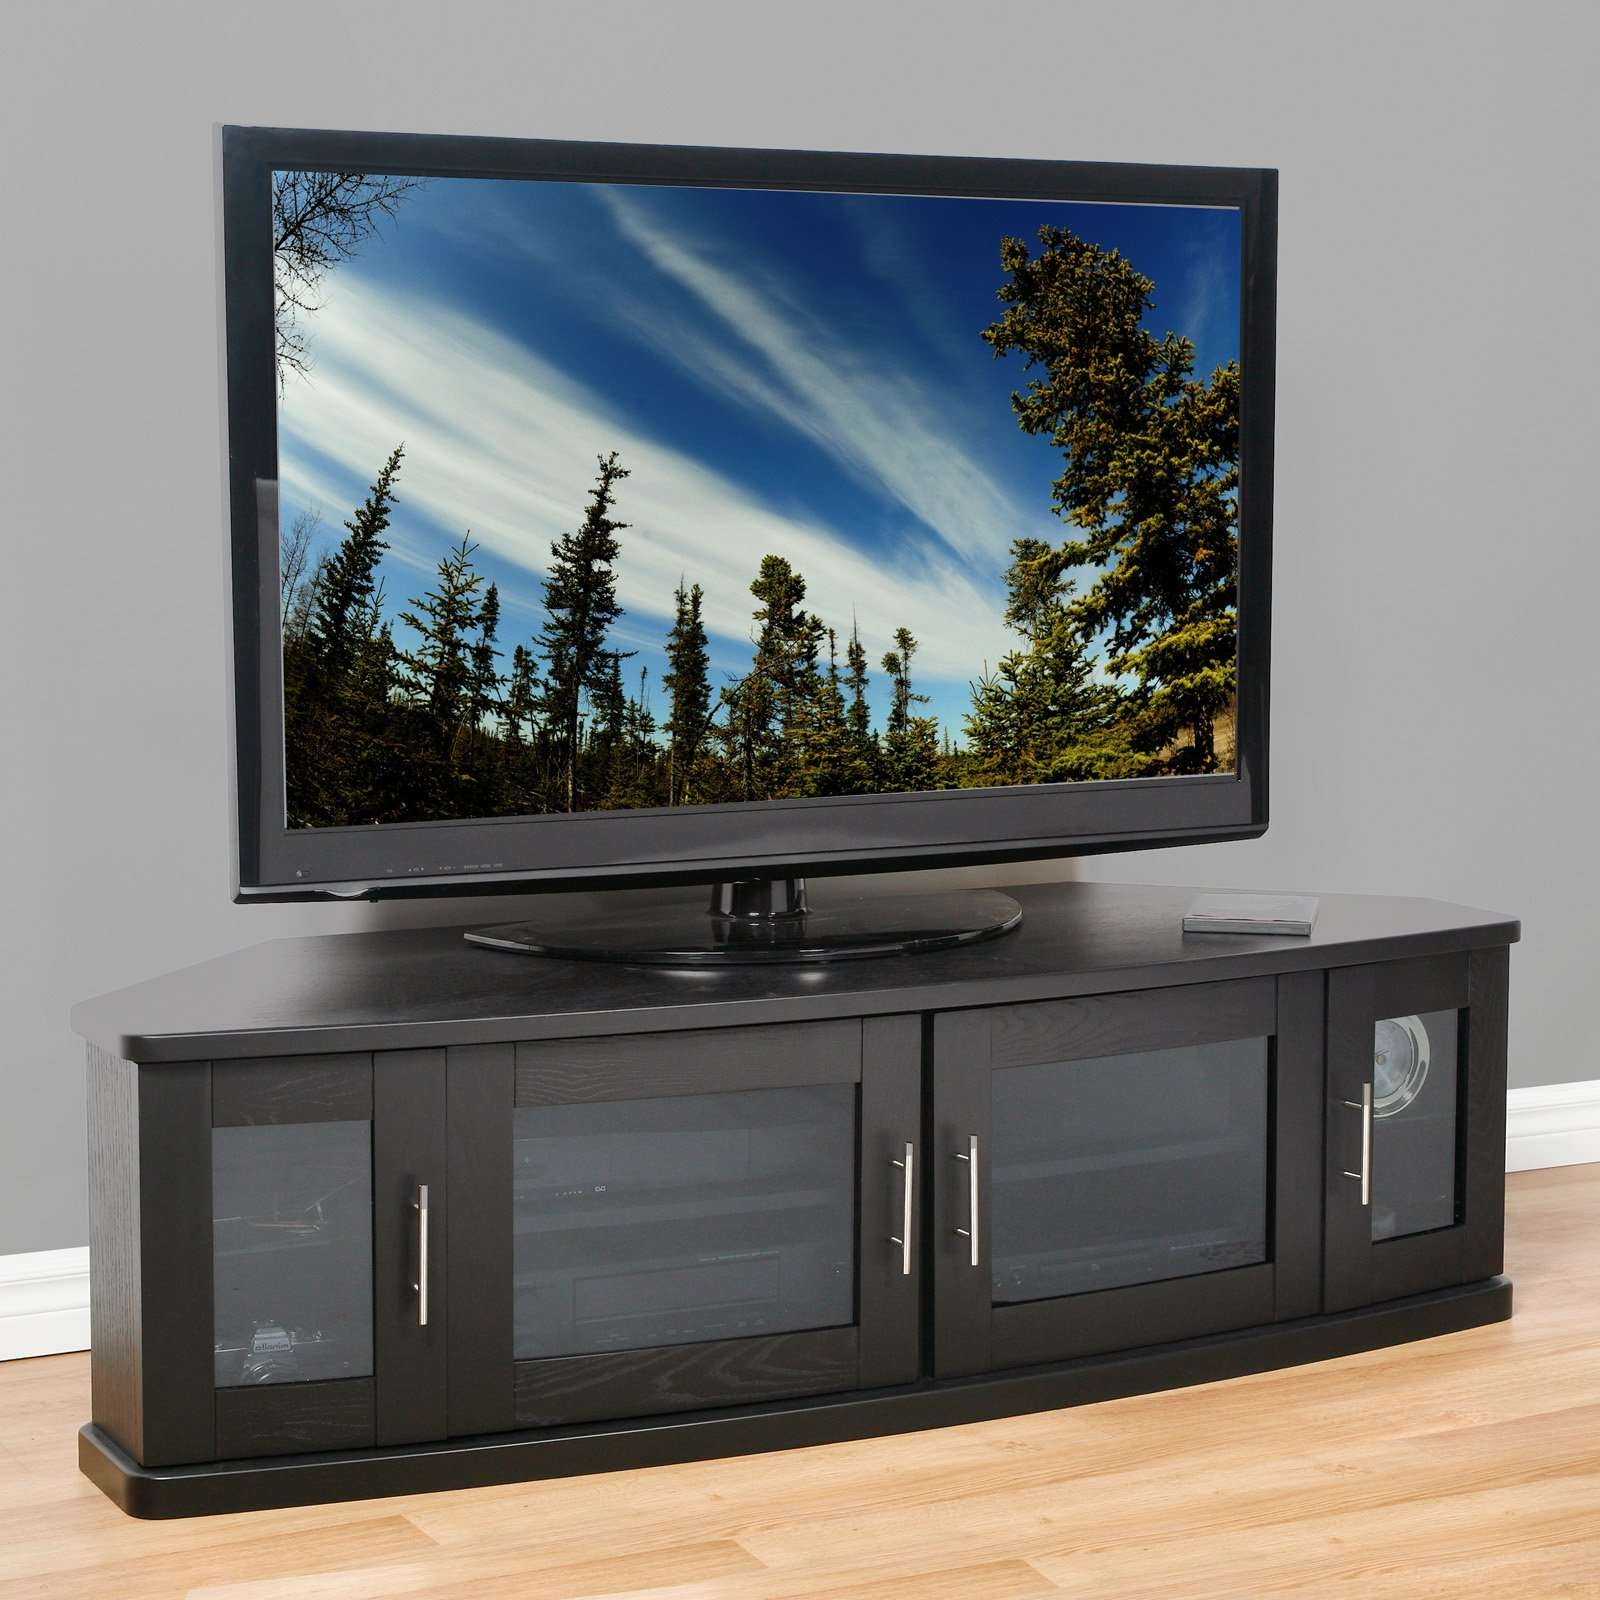 Plateau Newport 62 Inch Corner Tv Stand In Black – Walmart Pertaining To Tv Stands For Corner (View 10 of 15)